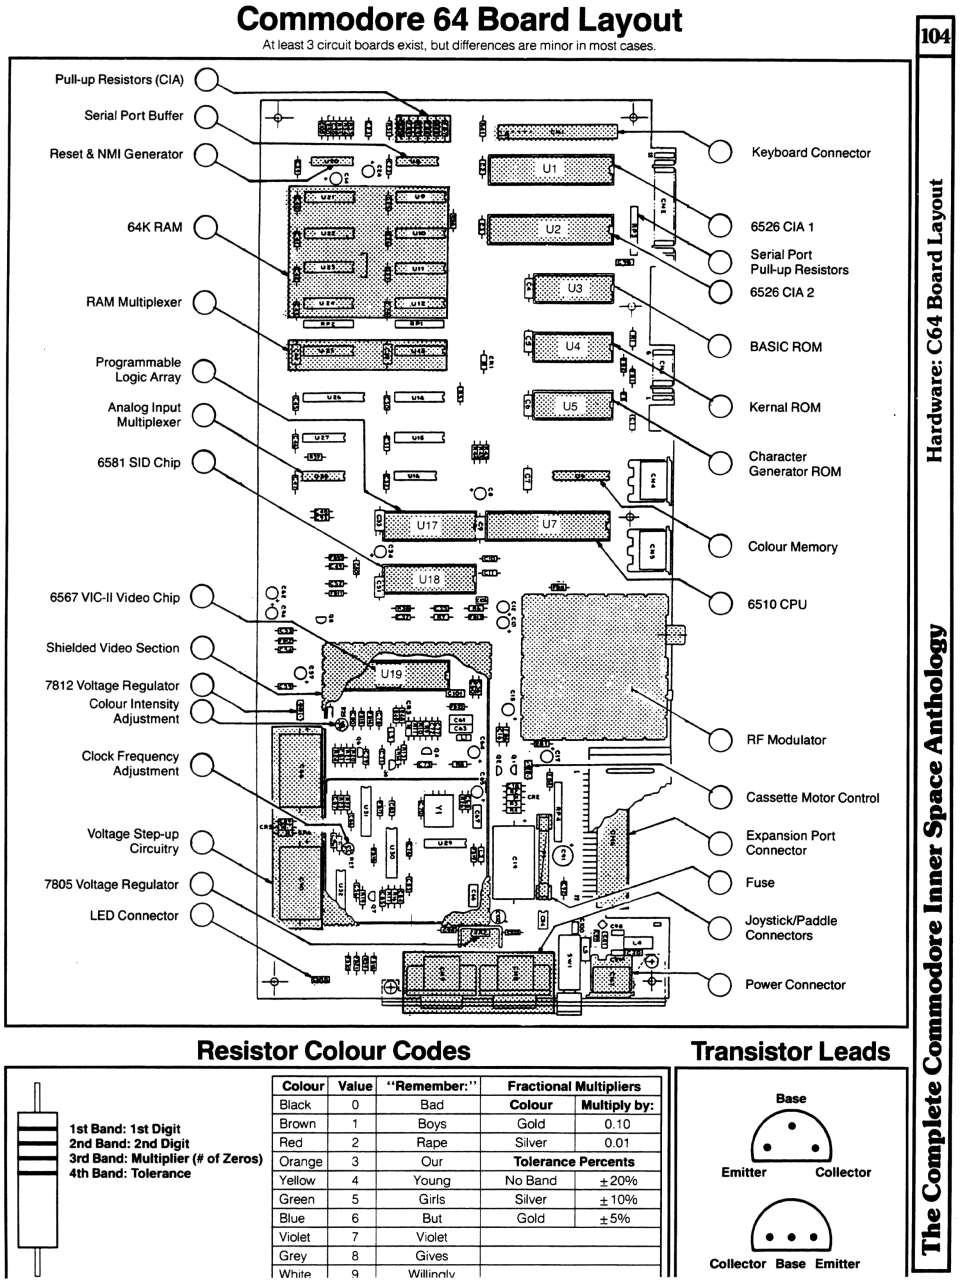 [960×1287 Hardware Section: Commodore 64 Board Layout, Resistor Colour Codes, Transistor Lead Assignments]